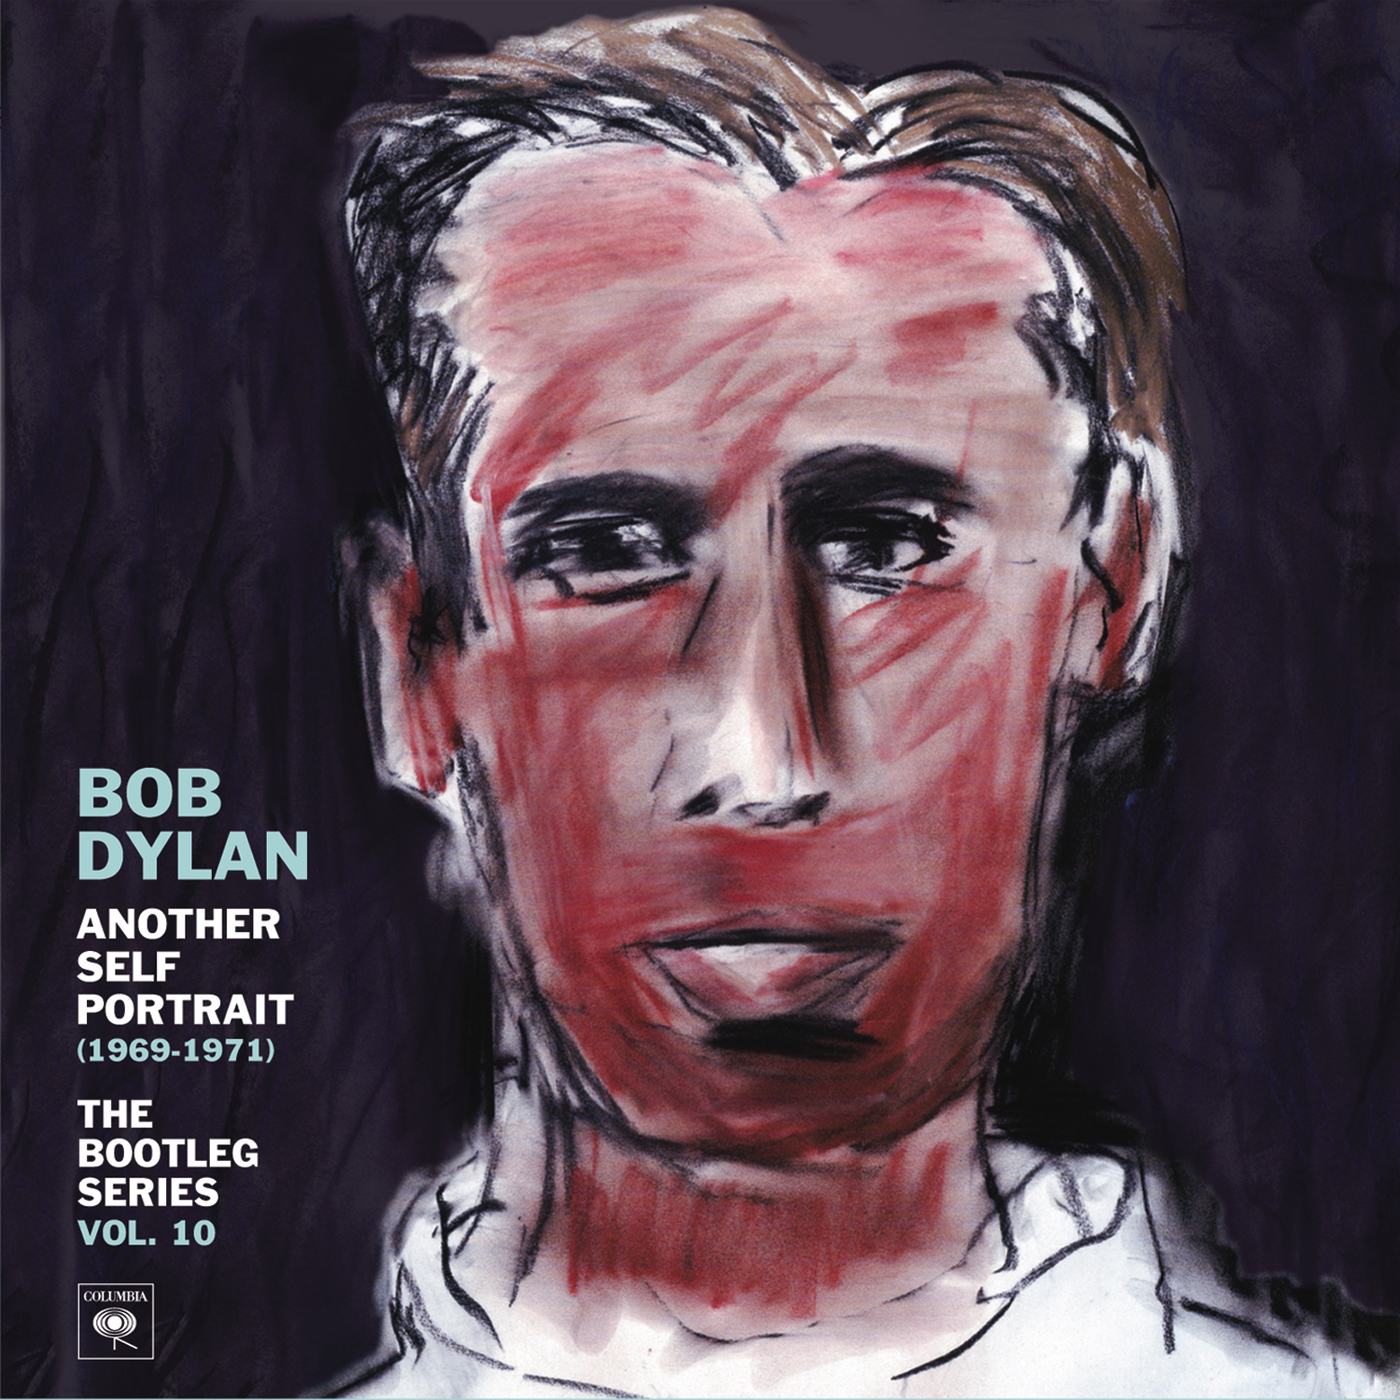 Another Self Portrait (1969-1971): The Bootleg Series, Vol. 10 - Bob Dylan